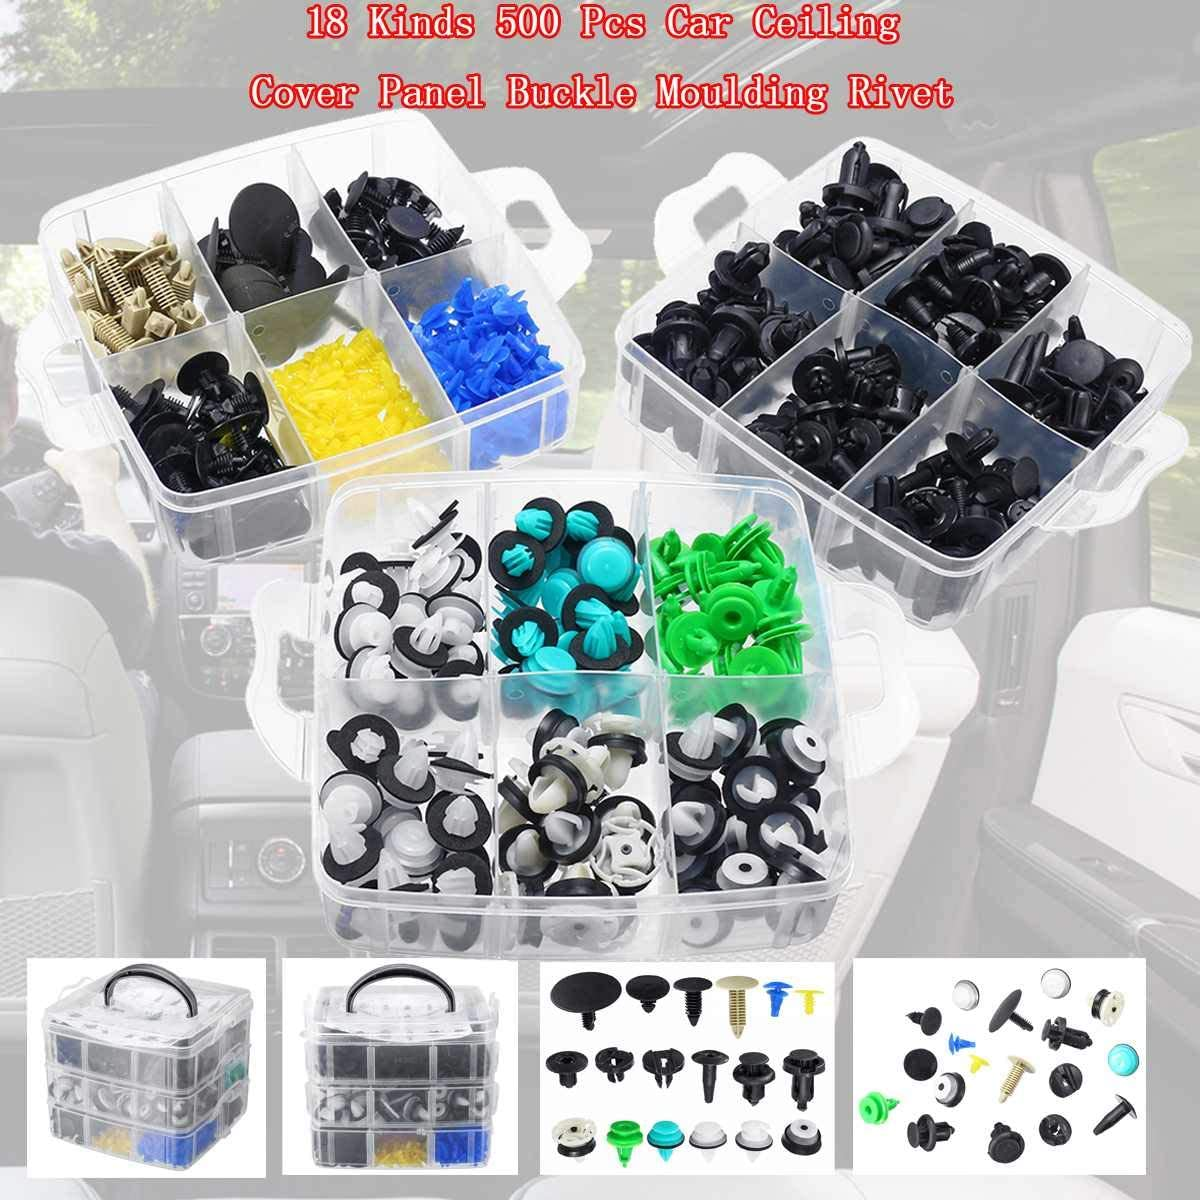 Car Hole Plug Assortment,100 Pcs Universal Car Door Card Panel Trim Clips Bumper Fastener Retainer Push Rivet Kit